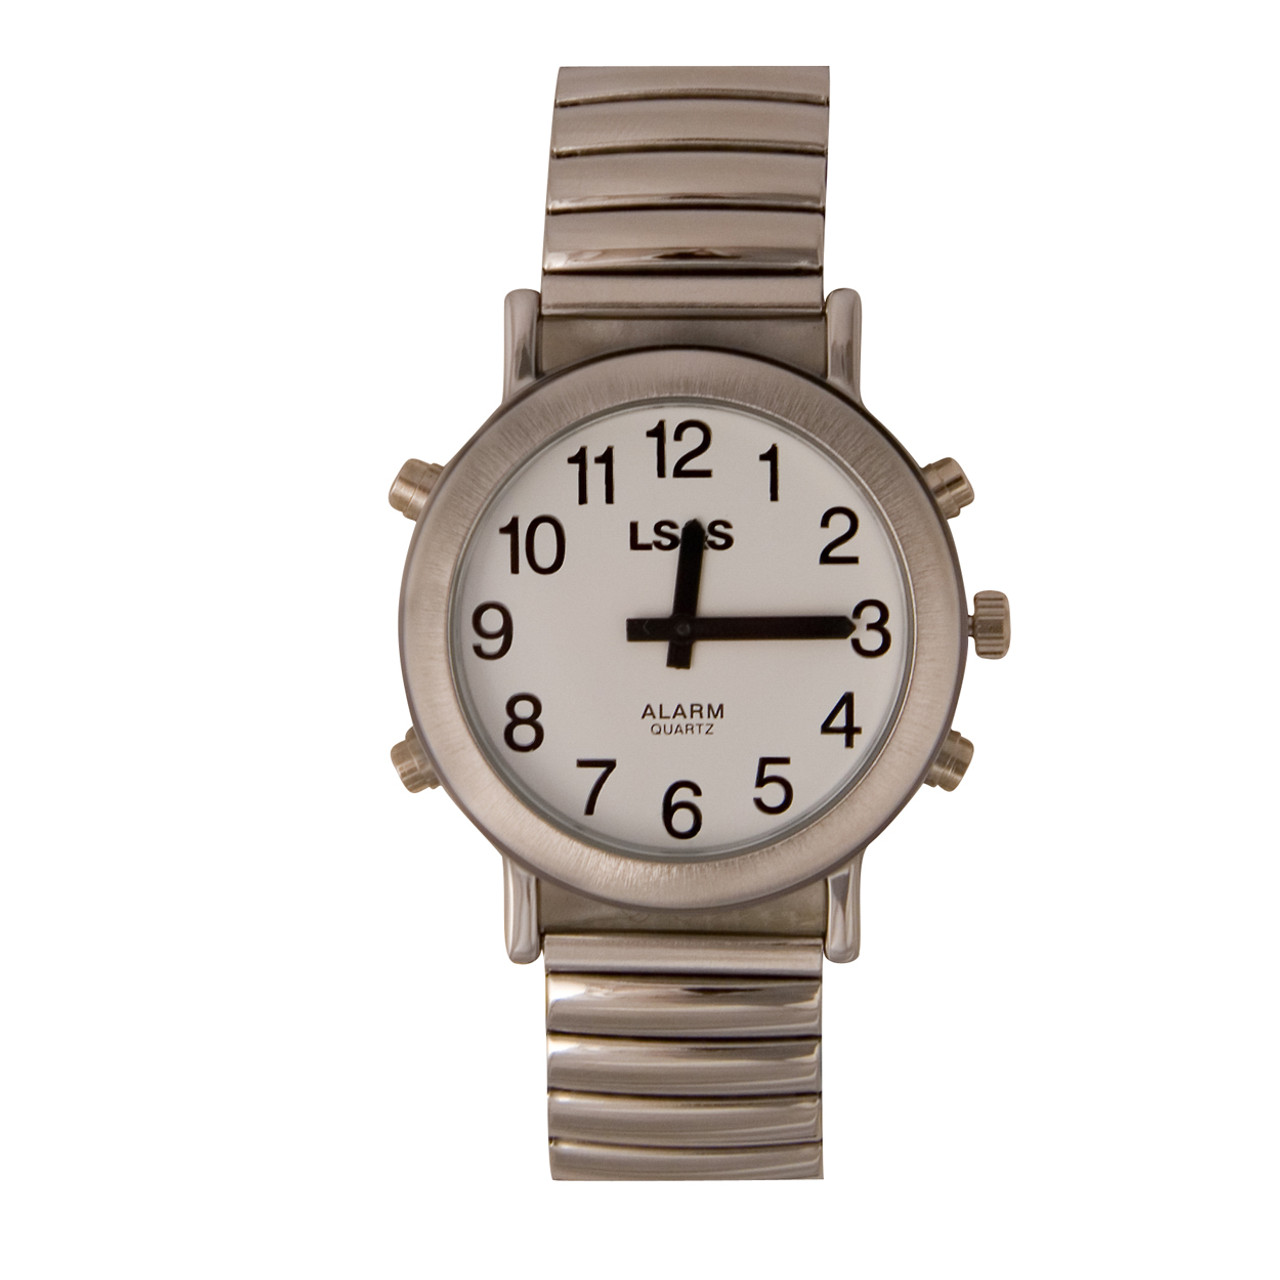 Talking Watch White face, silver color, expansion band